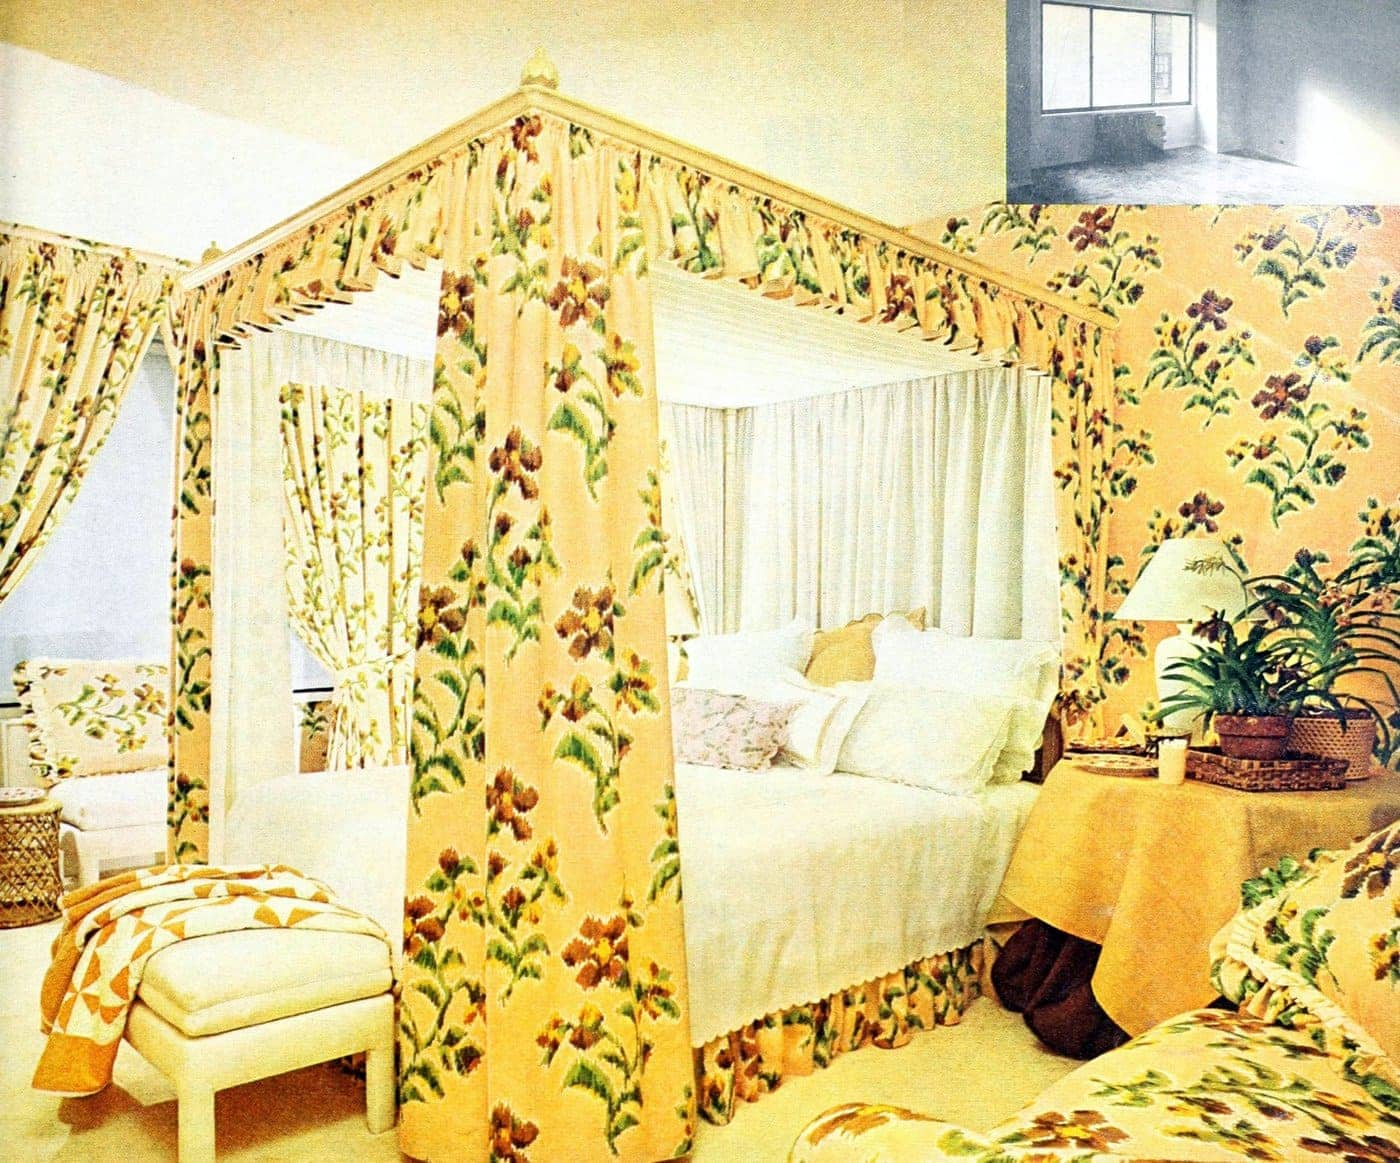 Beautiful vintage canopy beds from the 1970s (8)